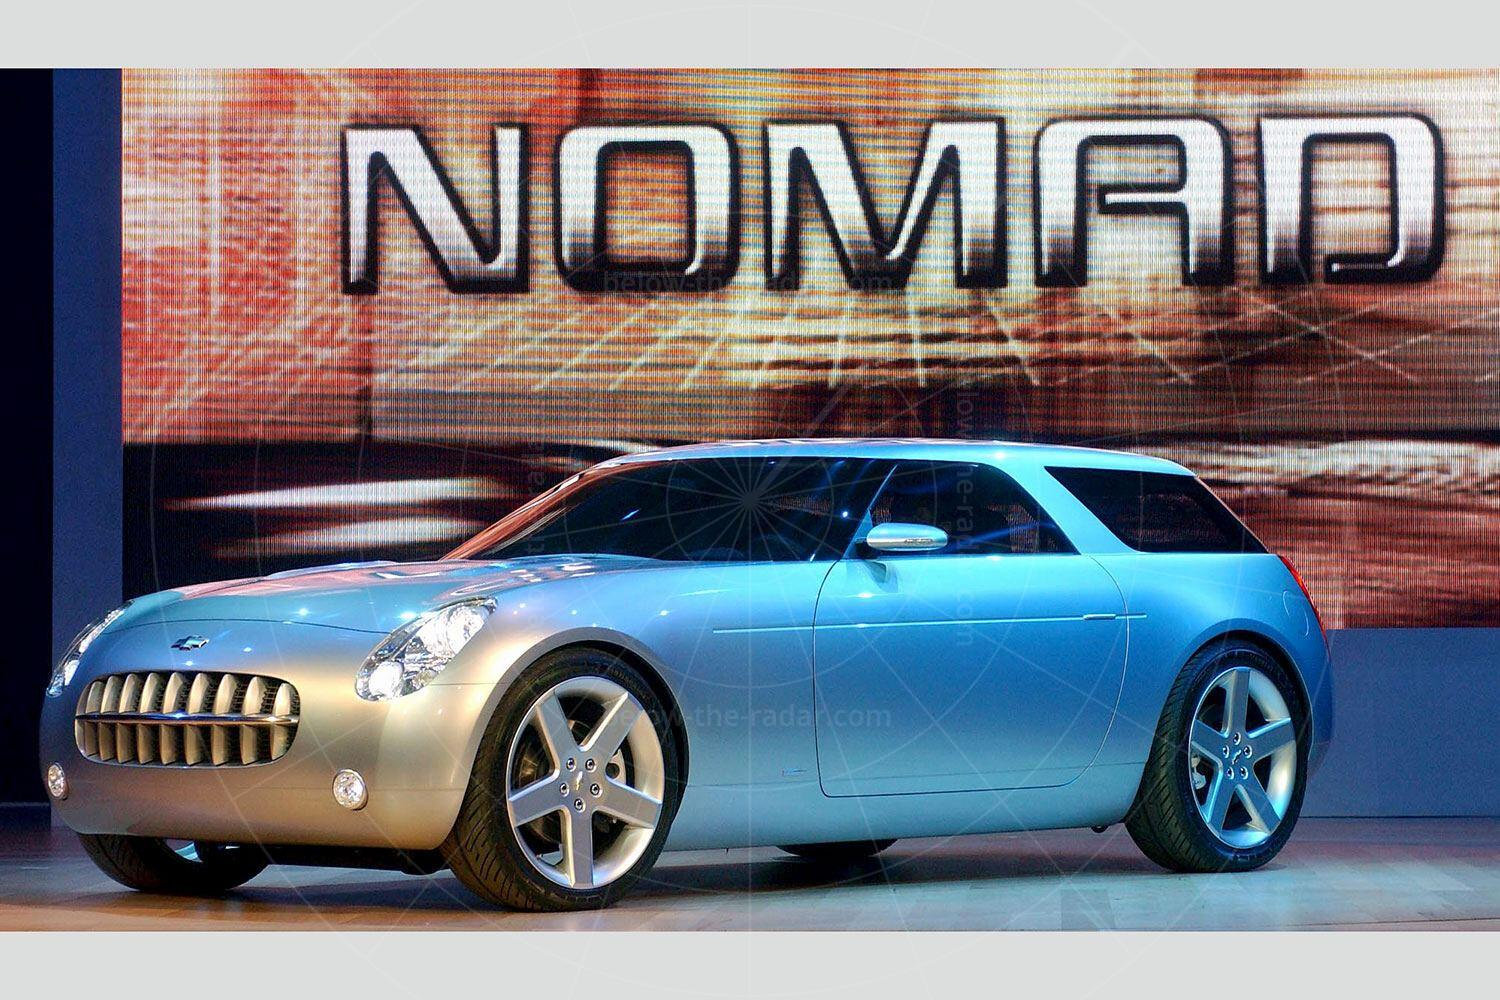 The 2004 Chevrolet Nomad concept being unveiled at the 2004 Detroit motor show Pic: GM | The 2004 Chevrolet Nomad concept being unveiled at the 2004 Detroit motor show